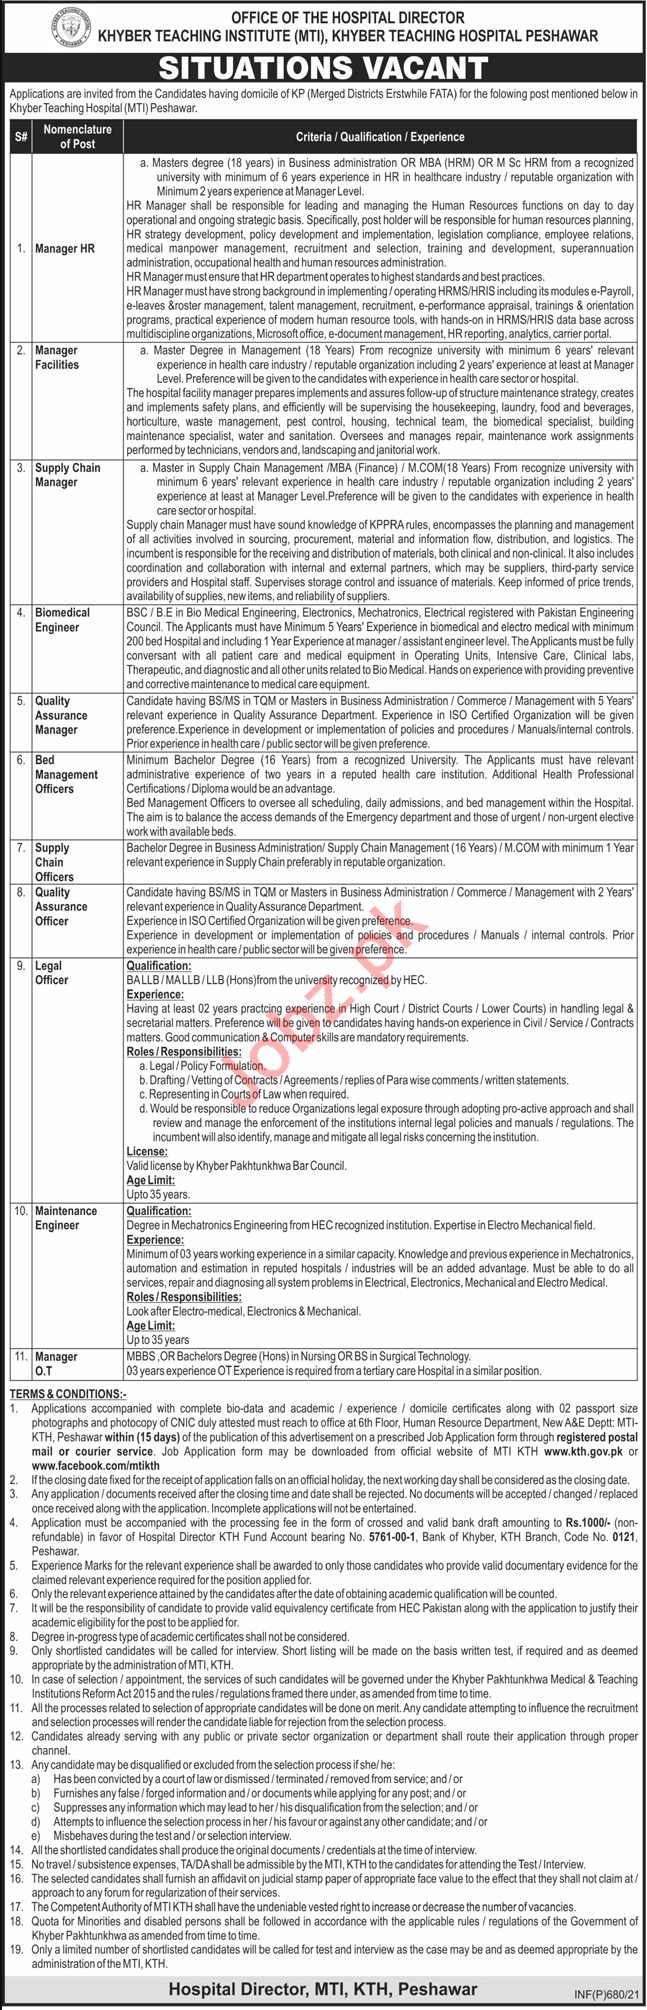 Khyber Teaching Institute KTH MTI Peshawar Jobs 2021